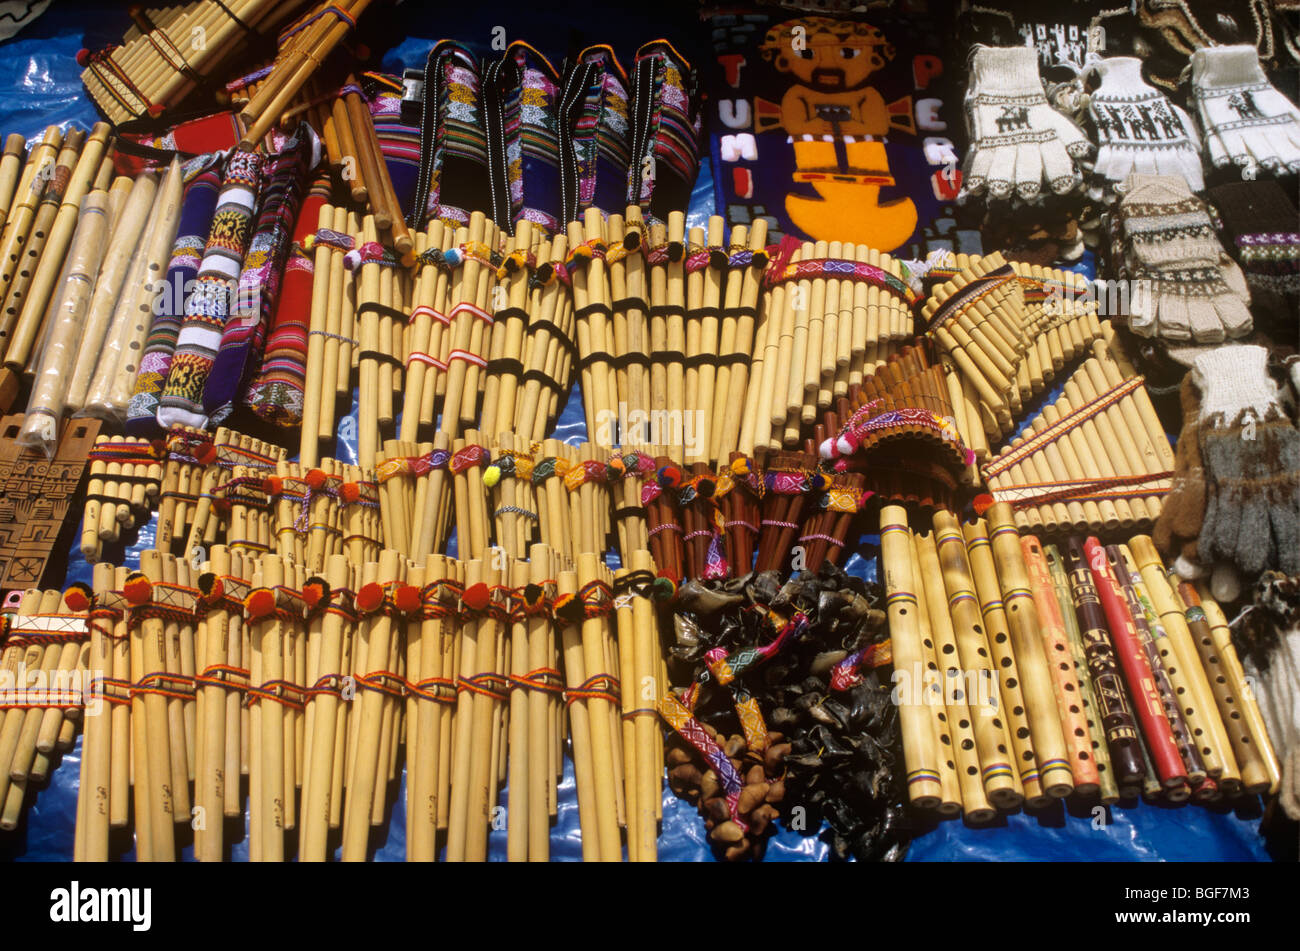 A Display Souvenirs At A Road Side Gift Stall In The Andes